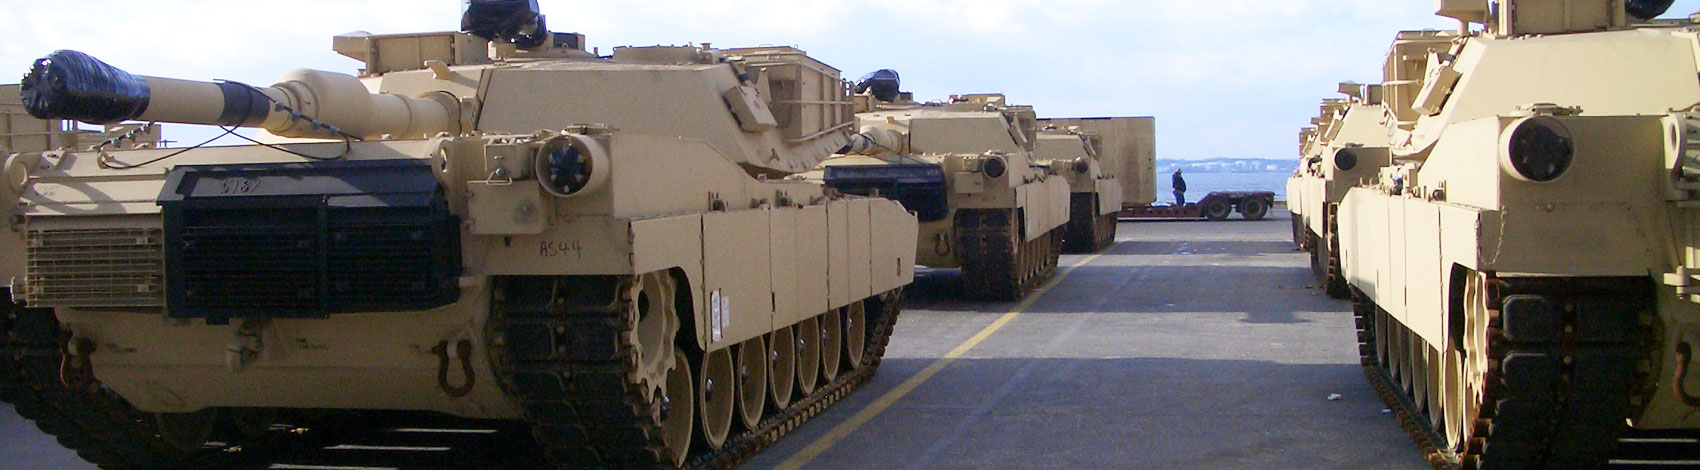 us_tanks